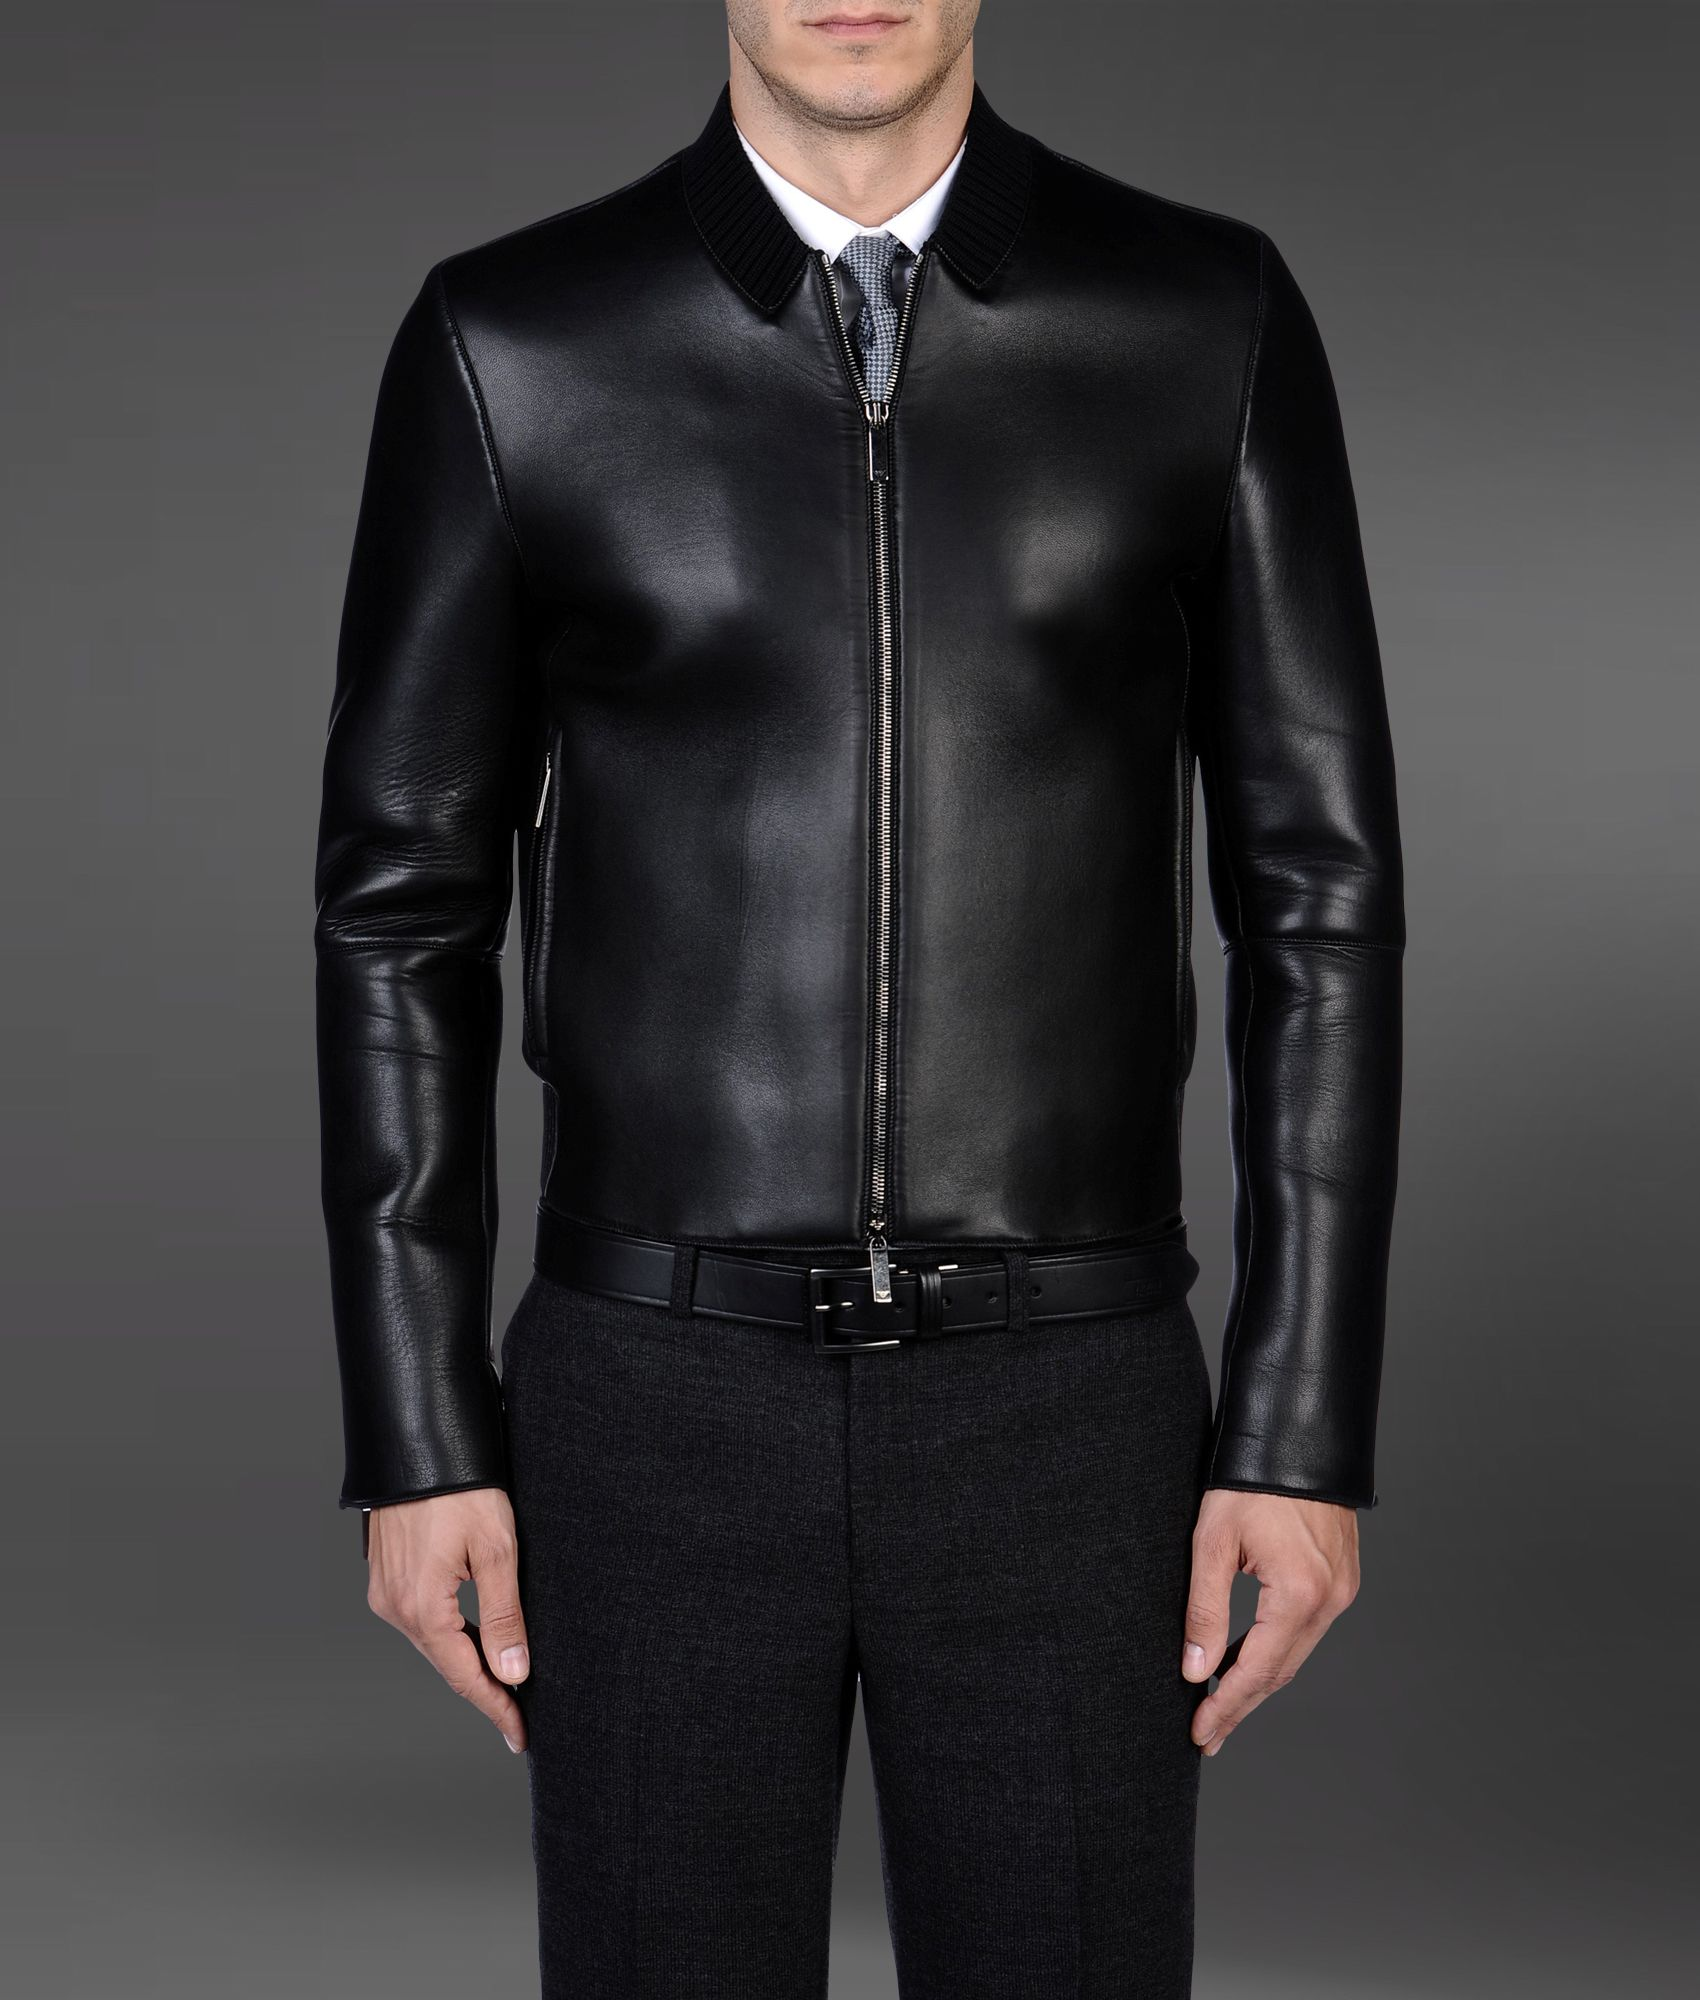 Emporio armani leather bomber jacket with knit collar in black for men